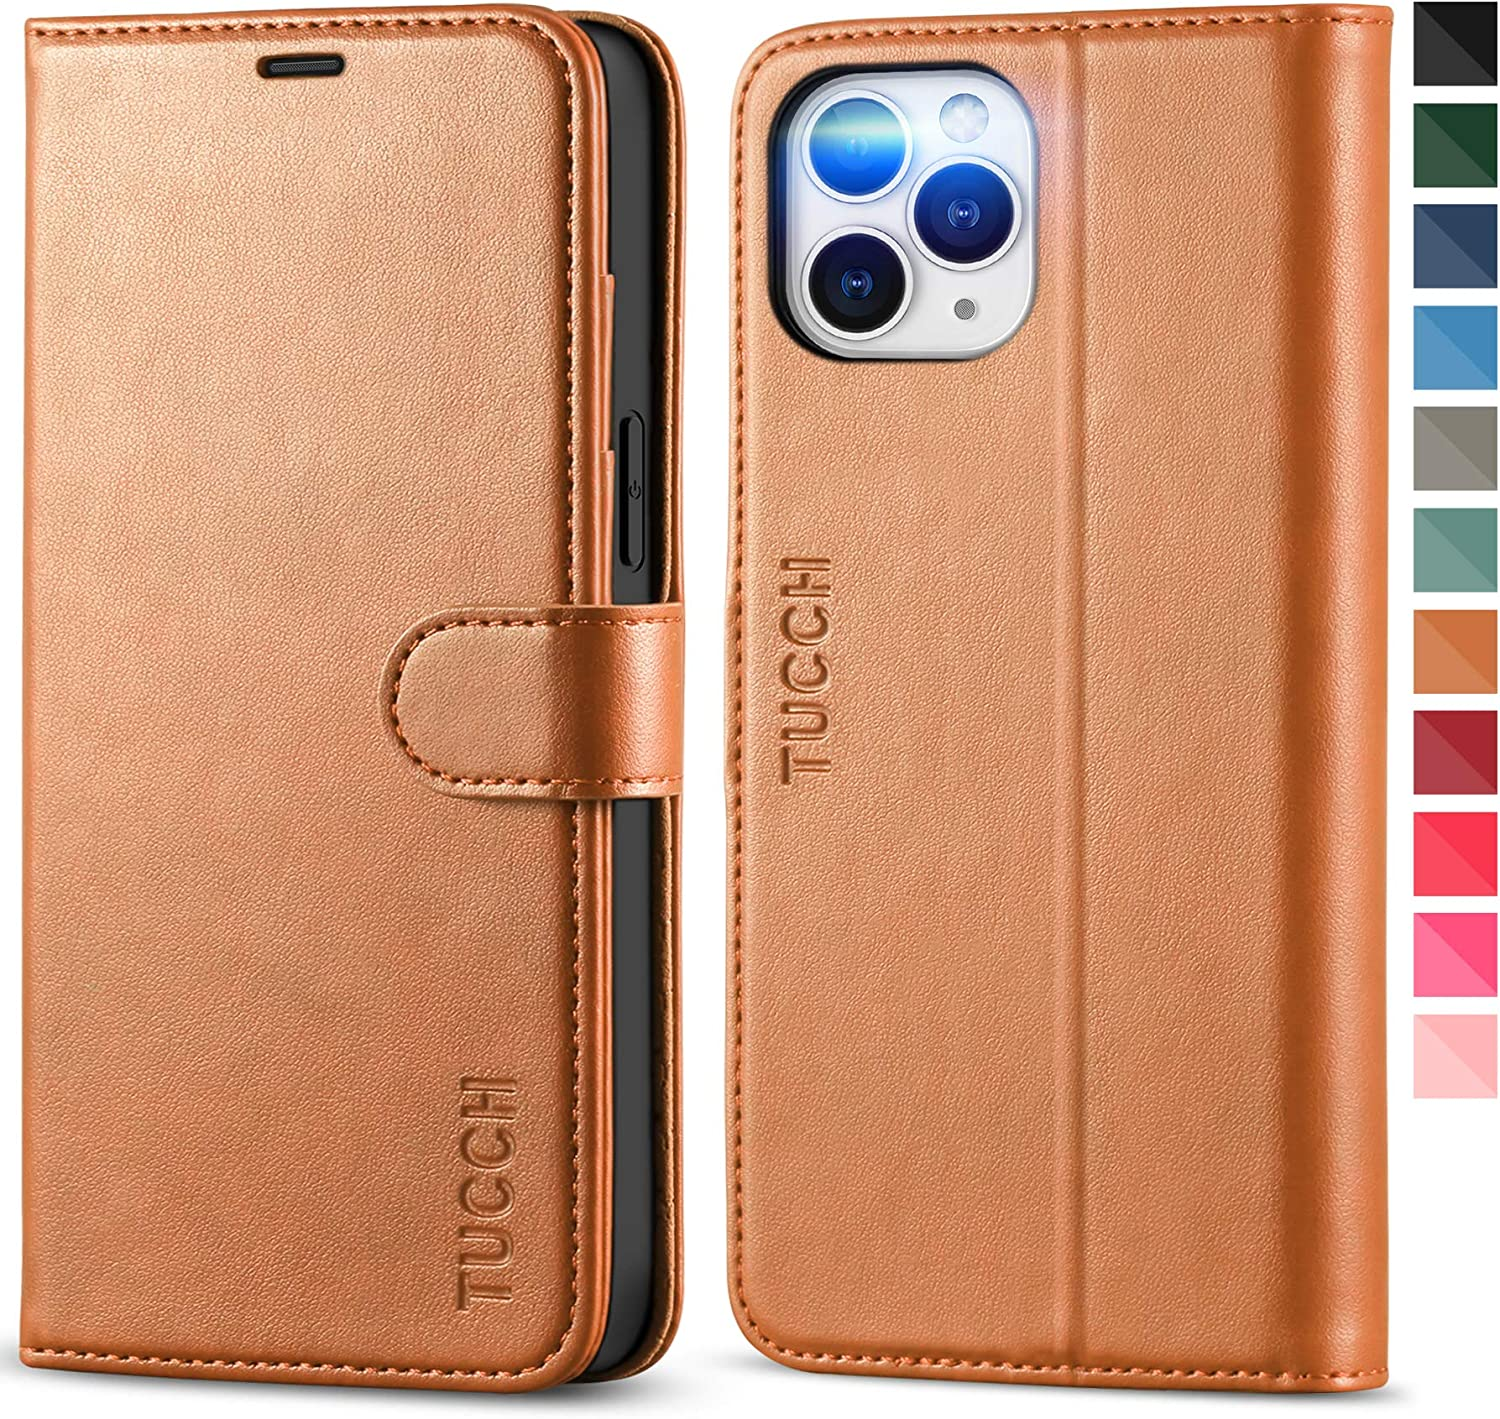 TUCCH Wallet Case for iPhone 12 Pro Max 5G, Magnetic PU Leather Stand Flip Folio Phone Cover with TPU Protective Inner Shell, RFID Blocking Card Slots Compatible with iPhone 12 Pro Max, Light Brown